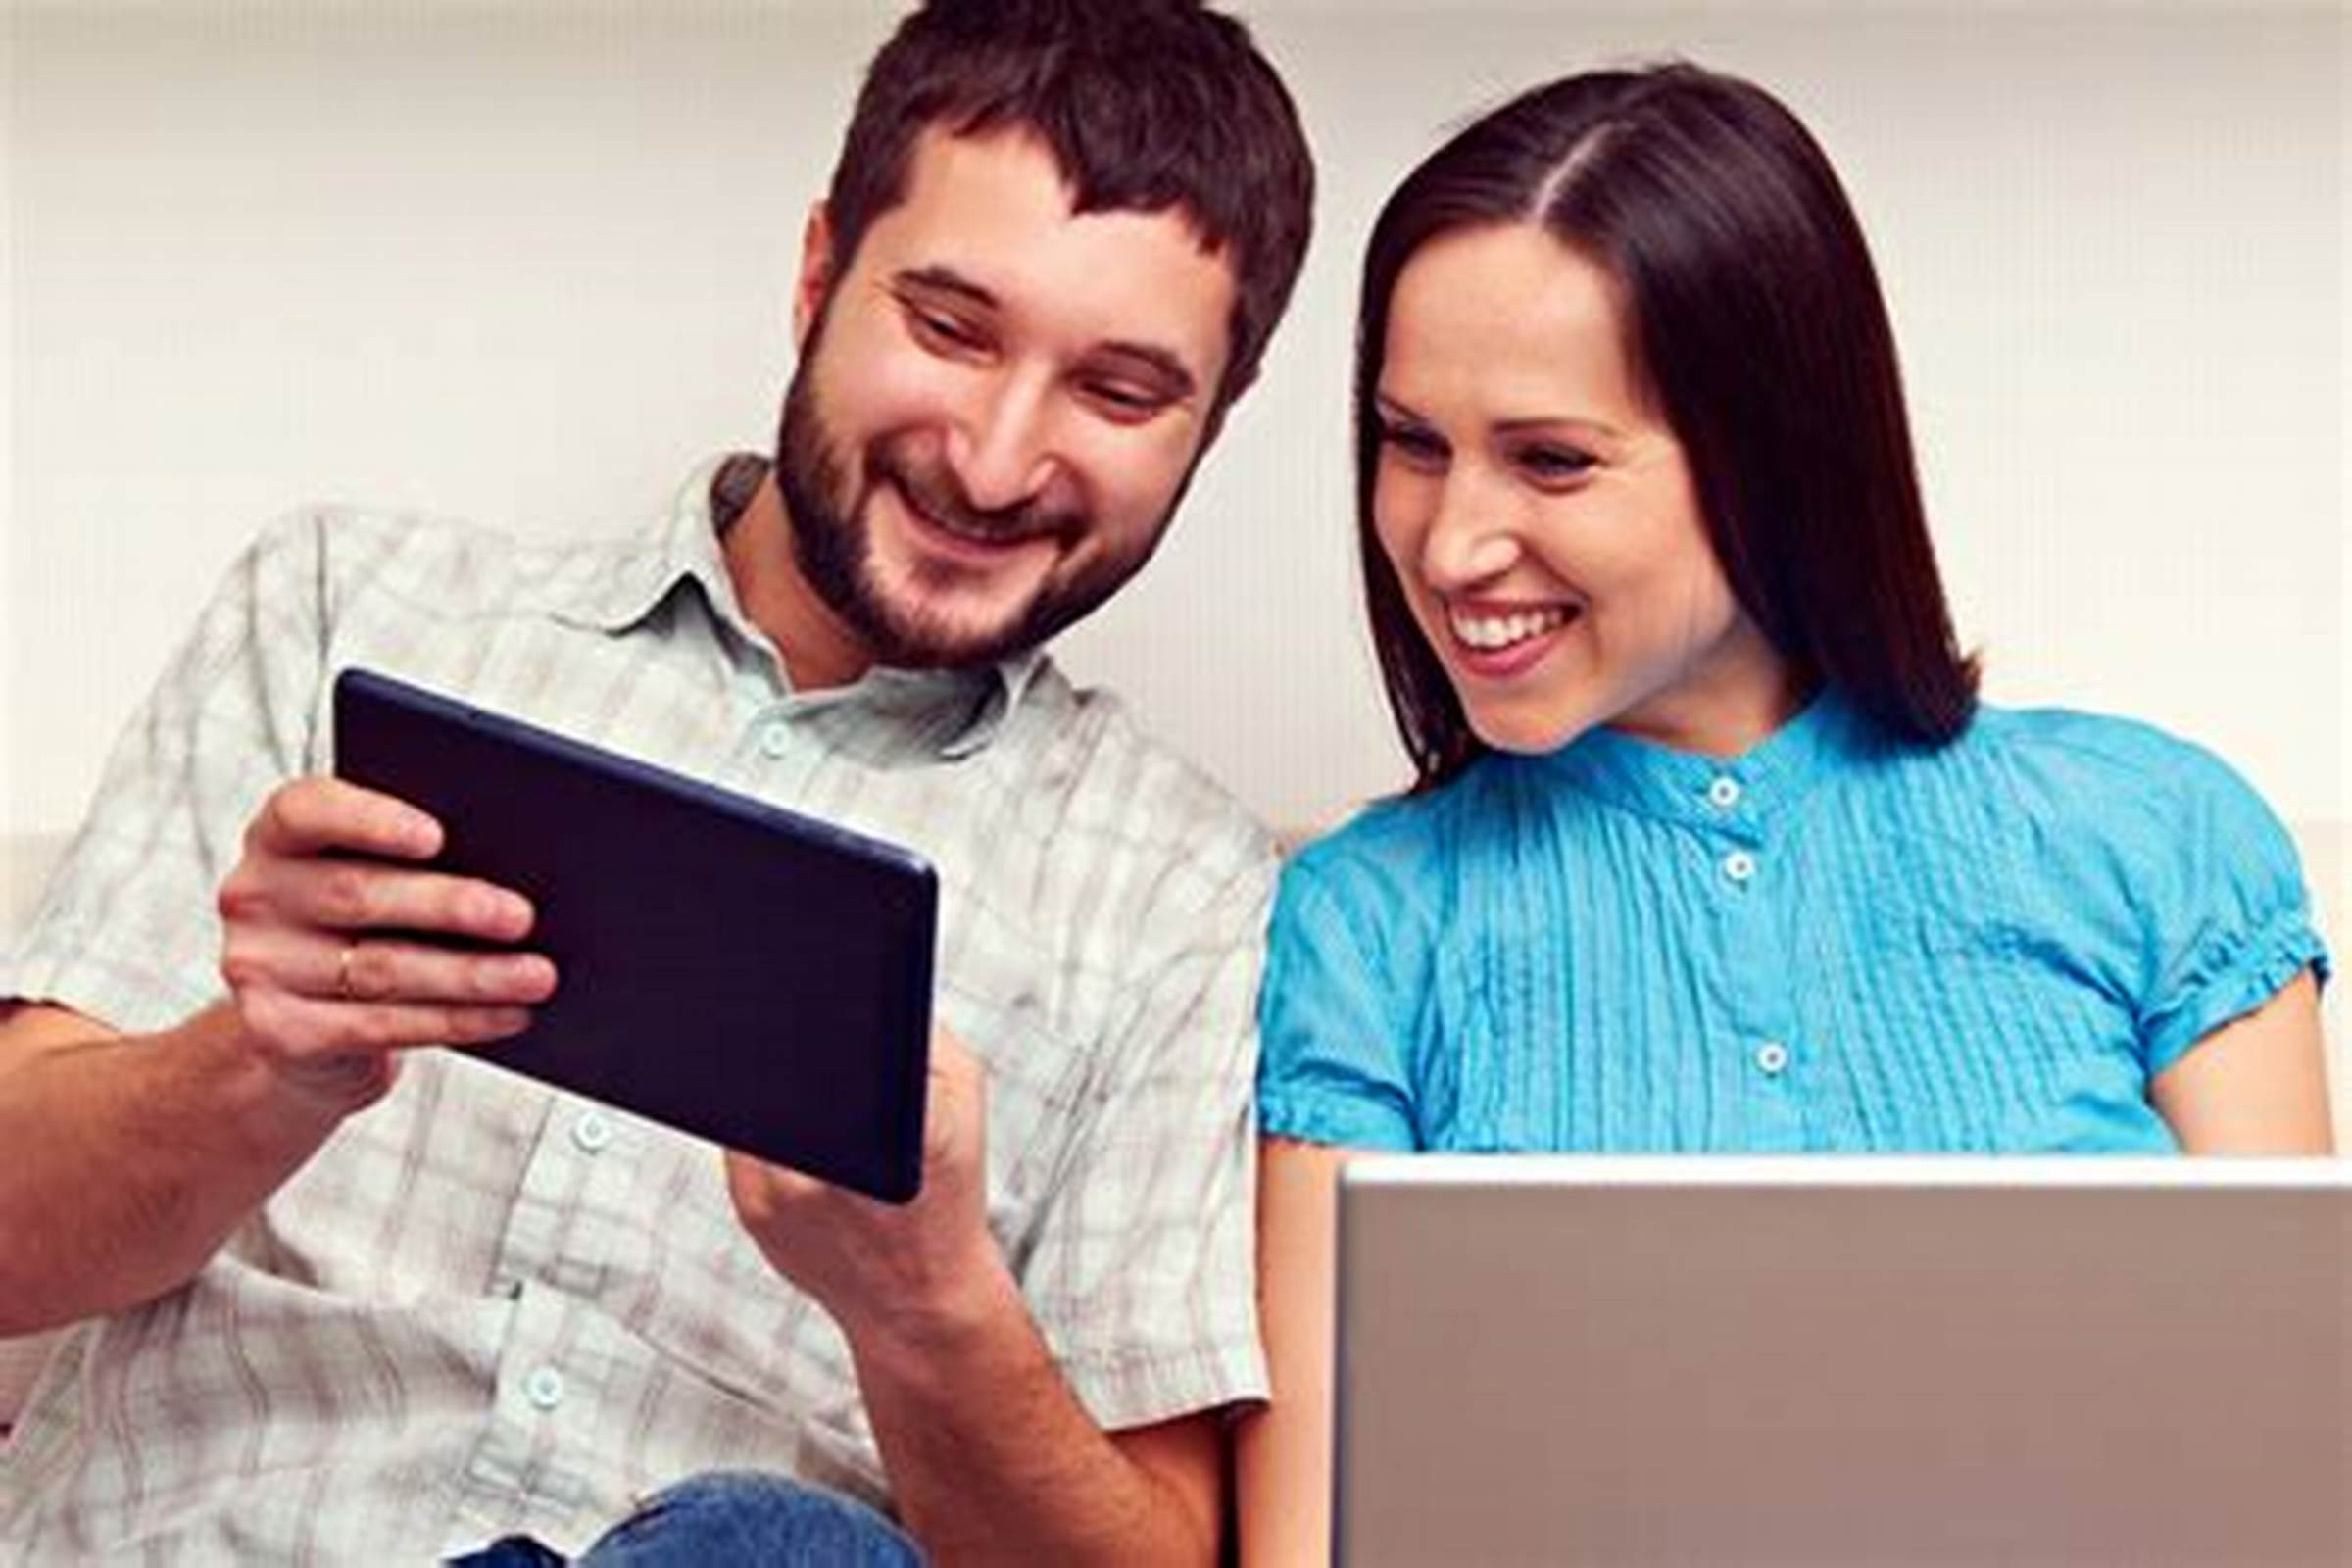 This article describes how you can apply for a personal loan using a loan app.